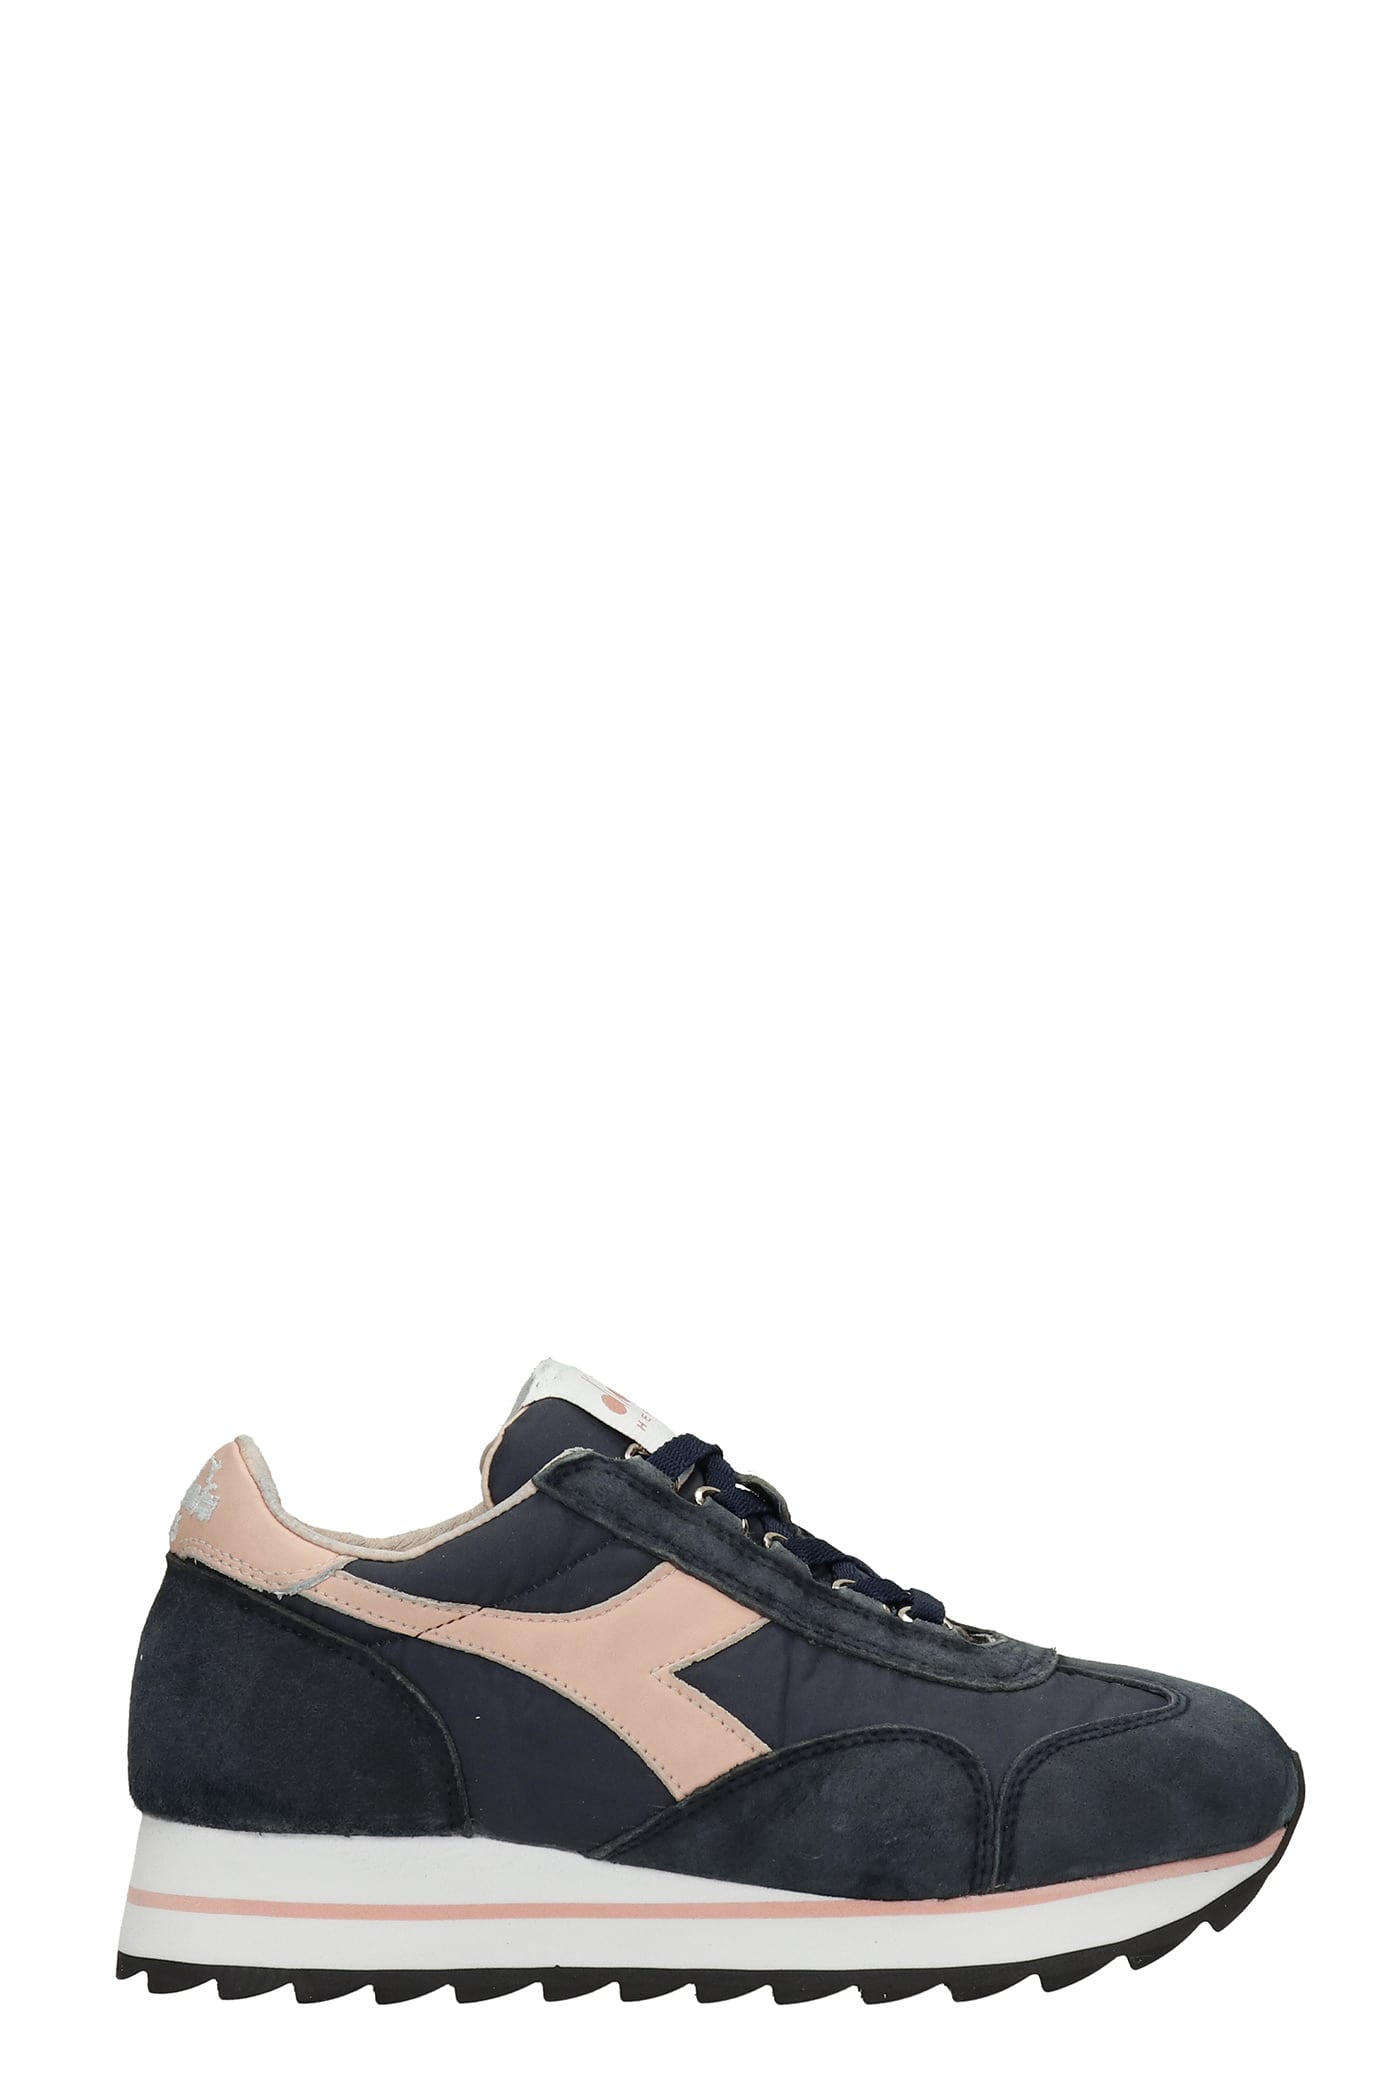 Equipe Sneakers In Blue Suede And Fabric